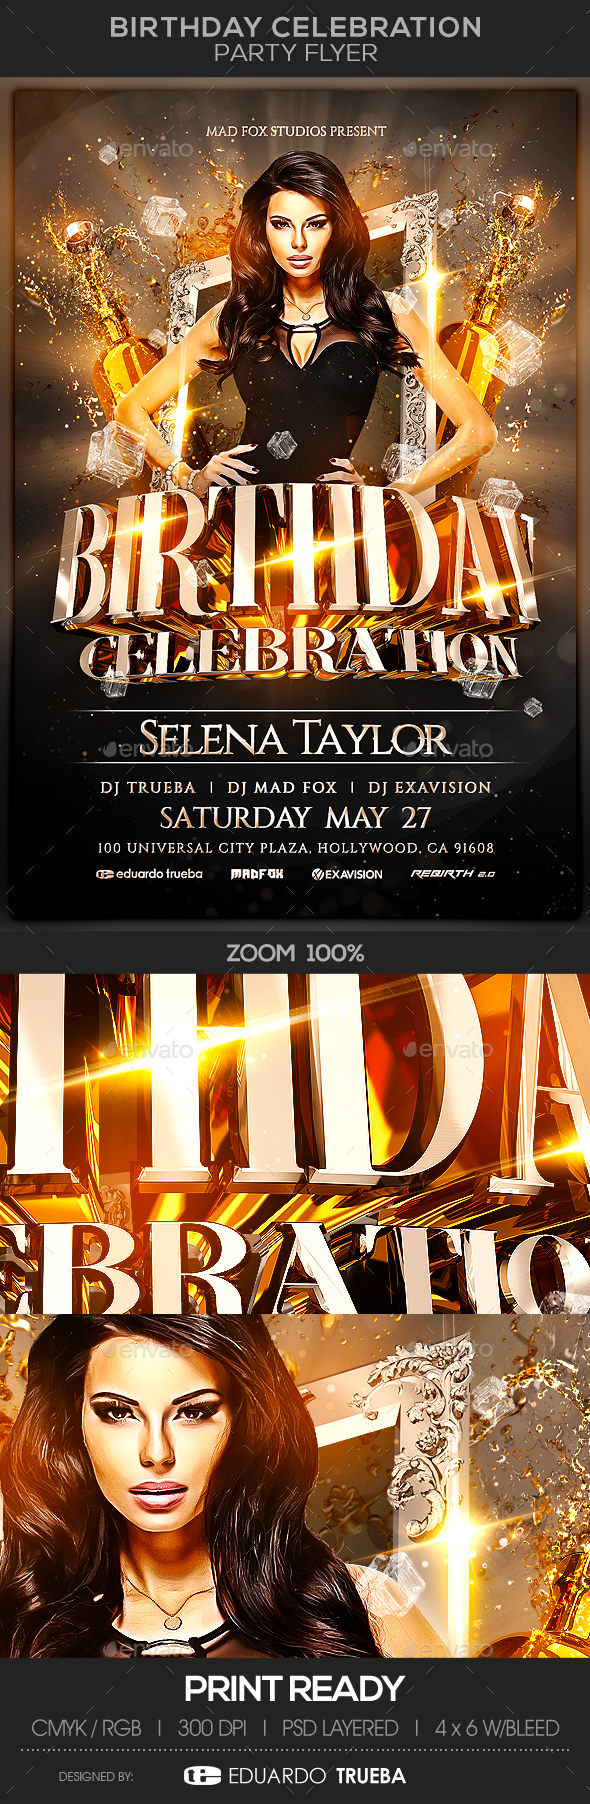 Birthday Celebration Party Flyer - Clubs & Parties Events